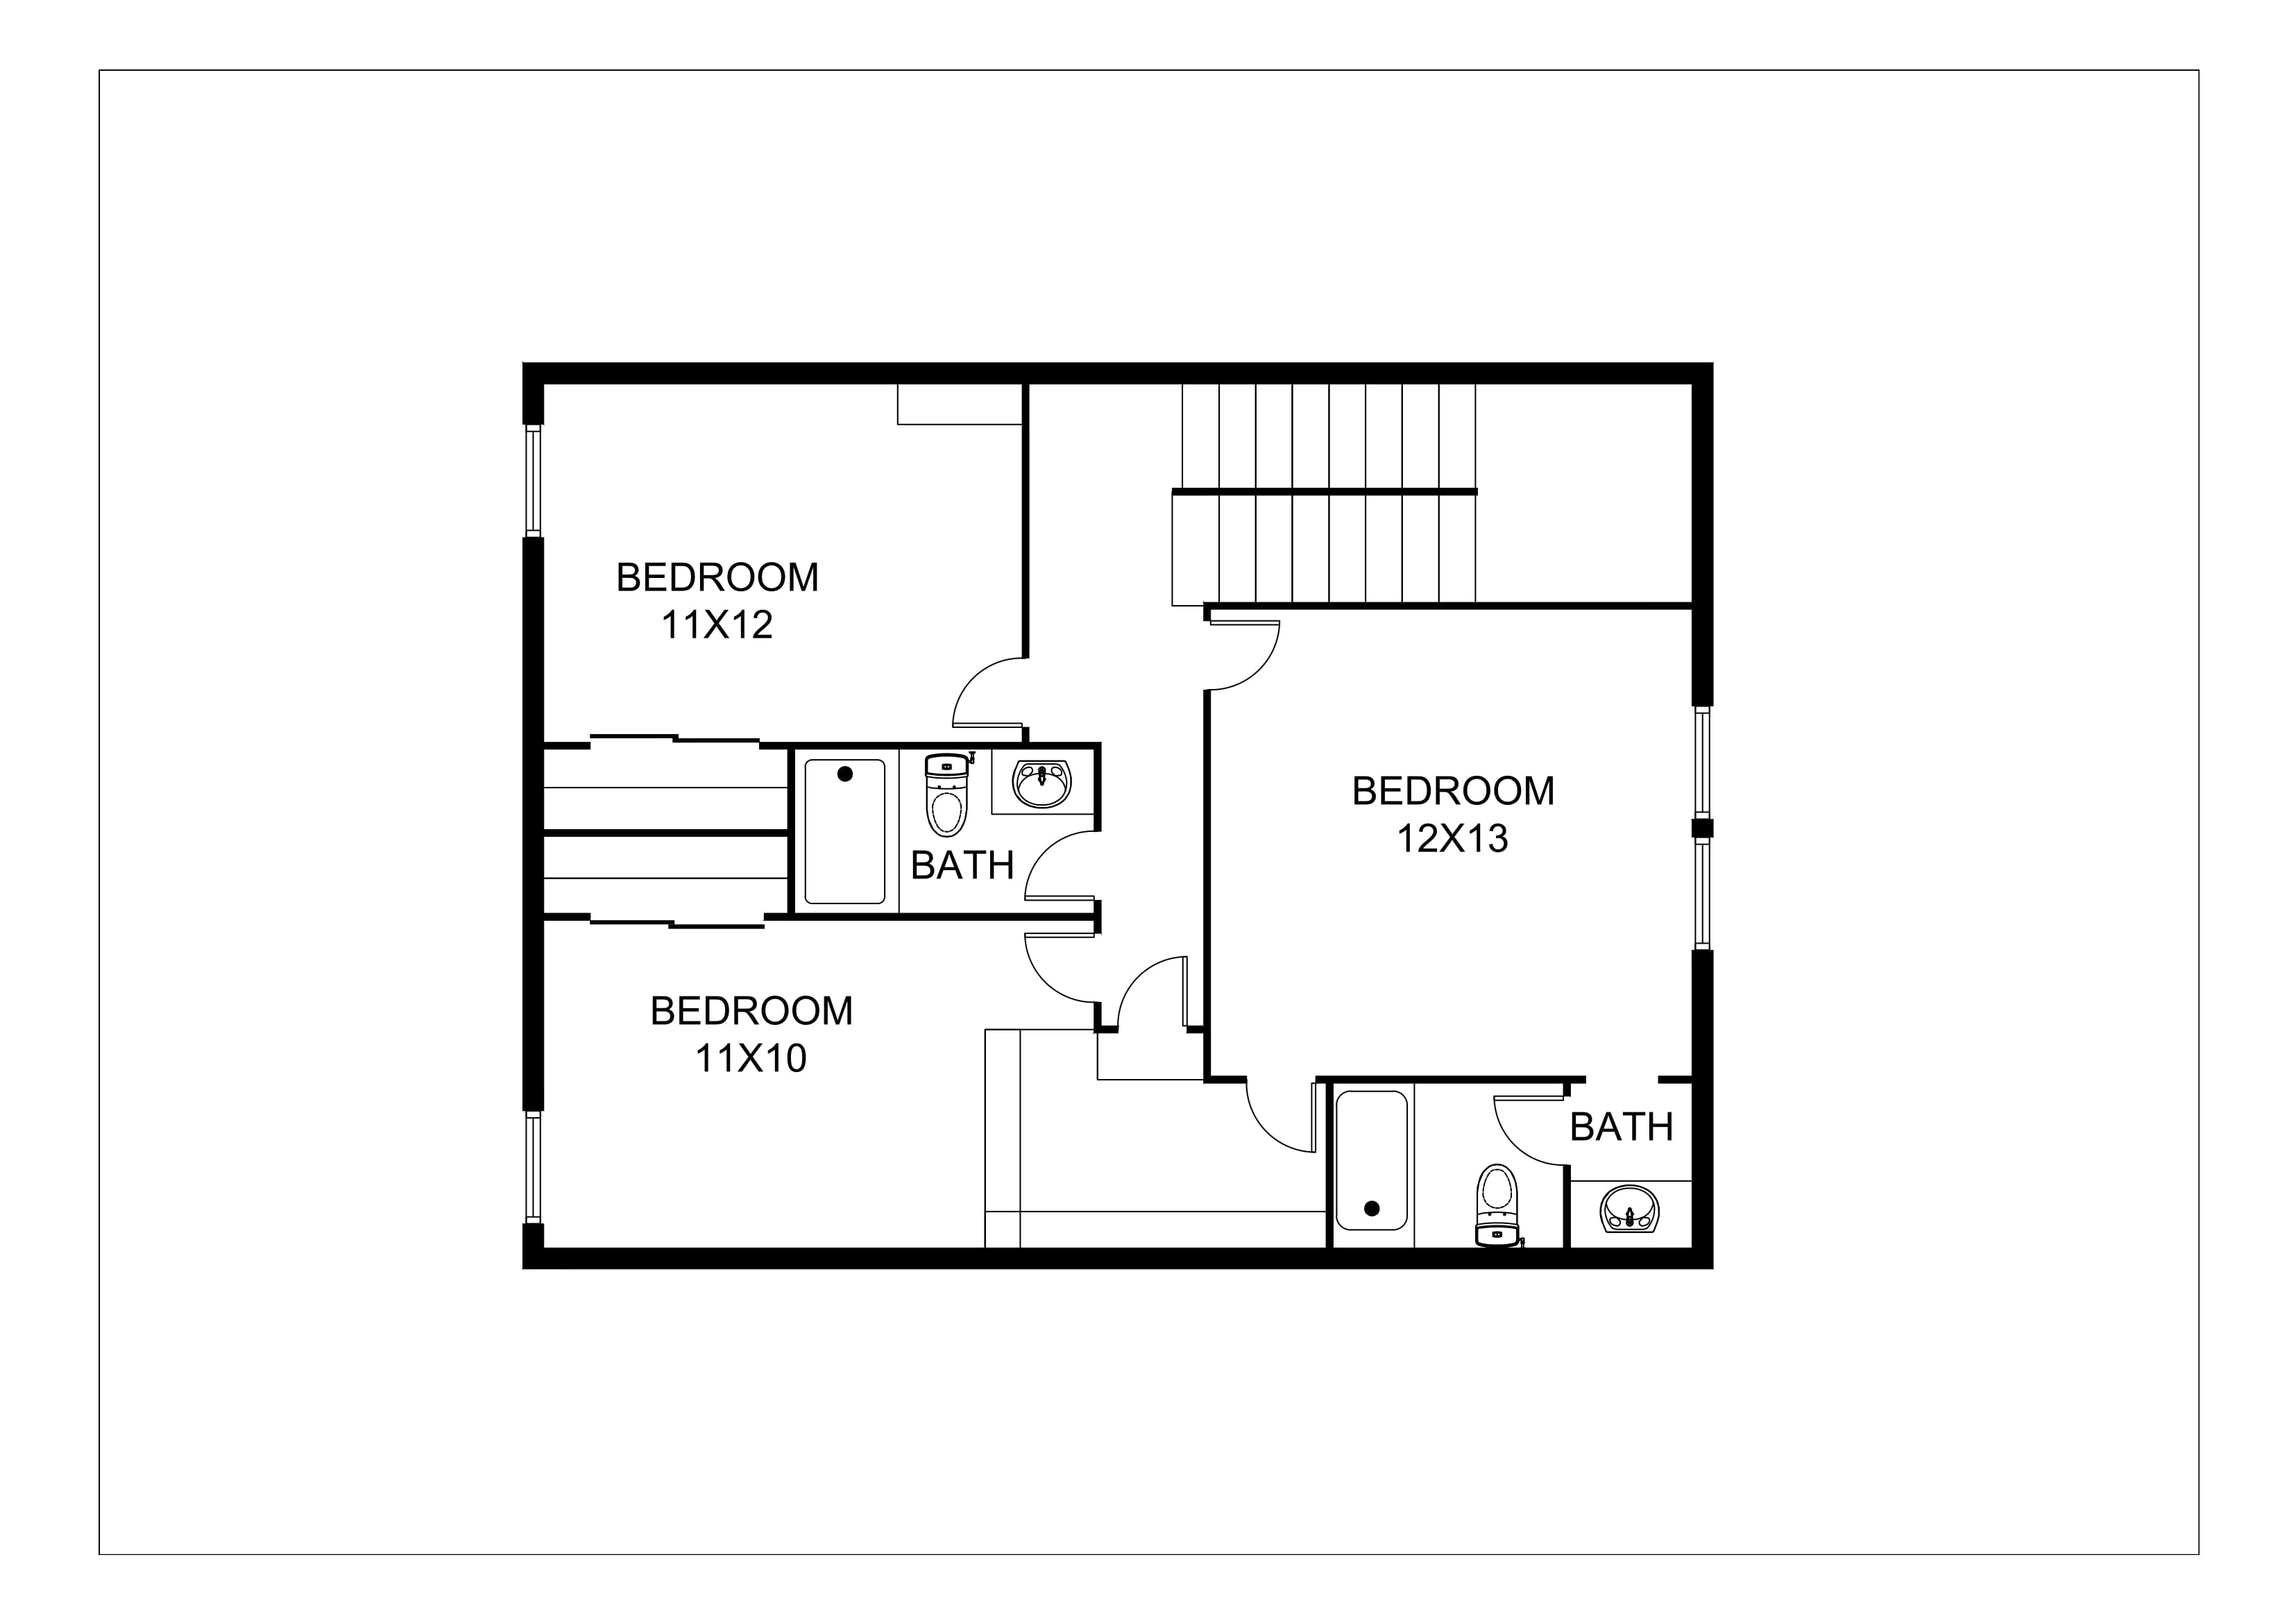 Real estate 2d floor plans design rendering samples for Floor plane